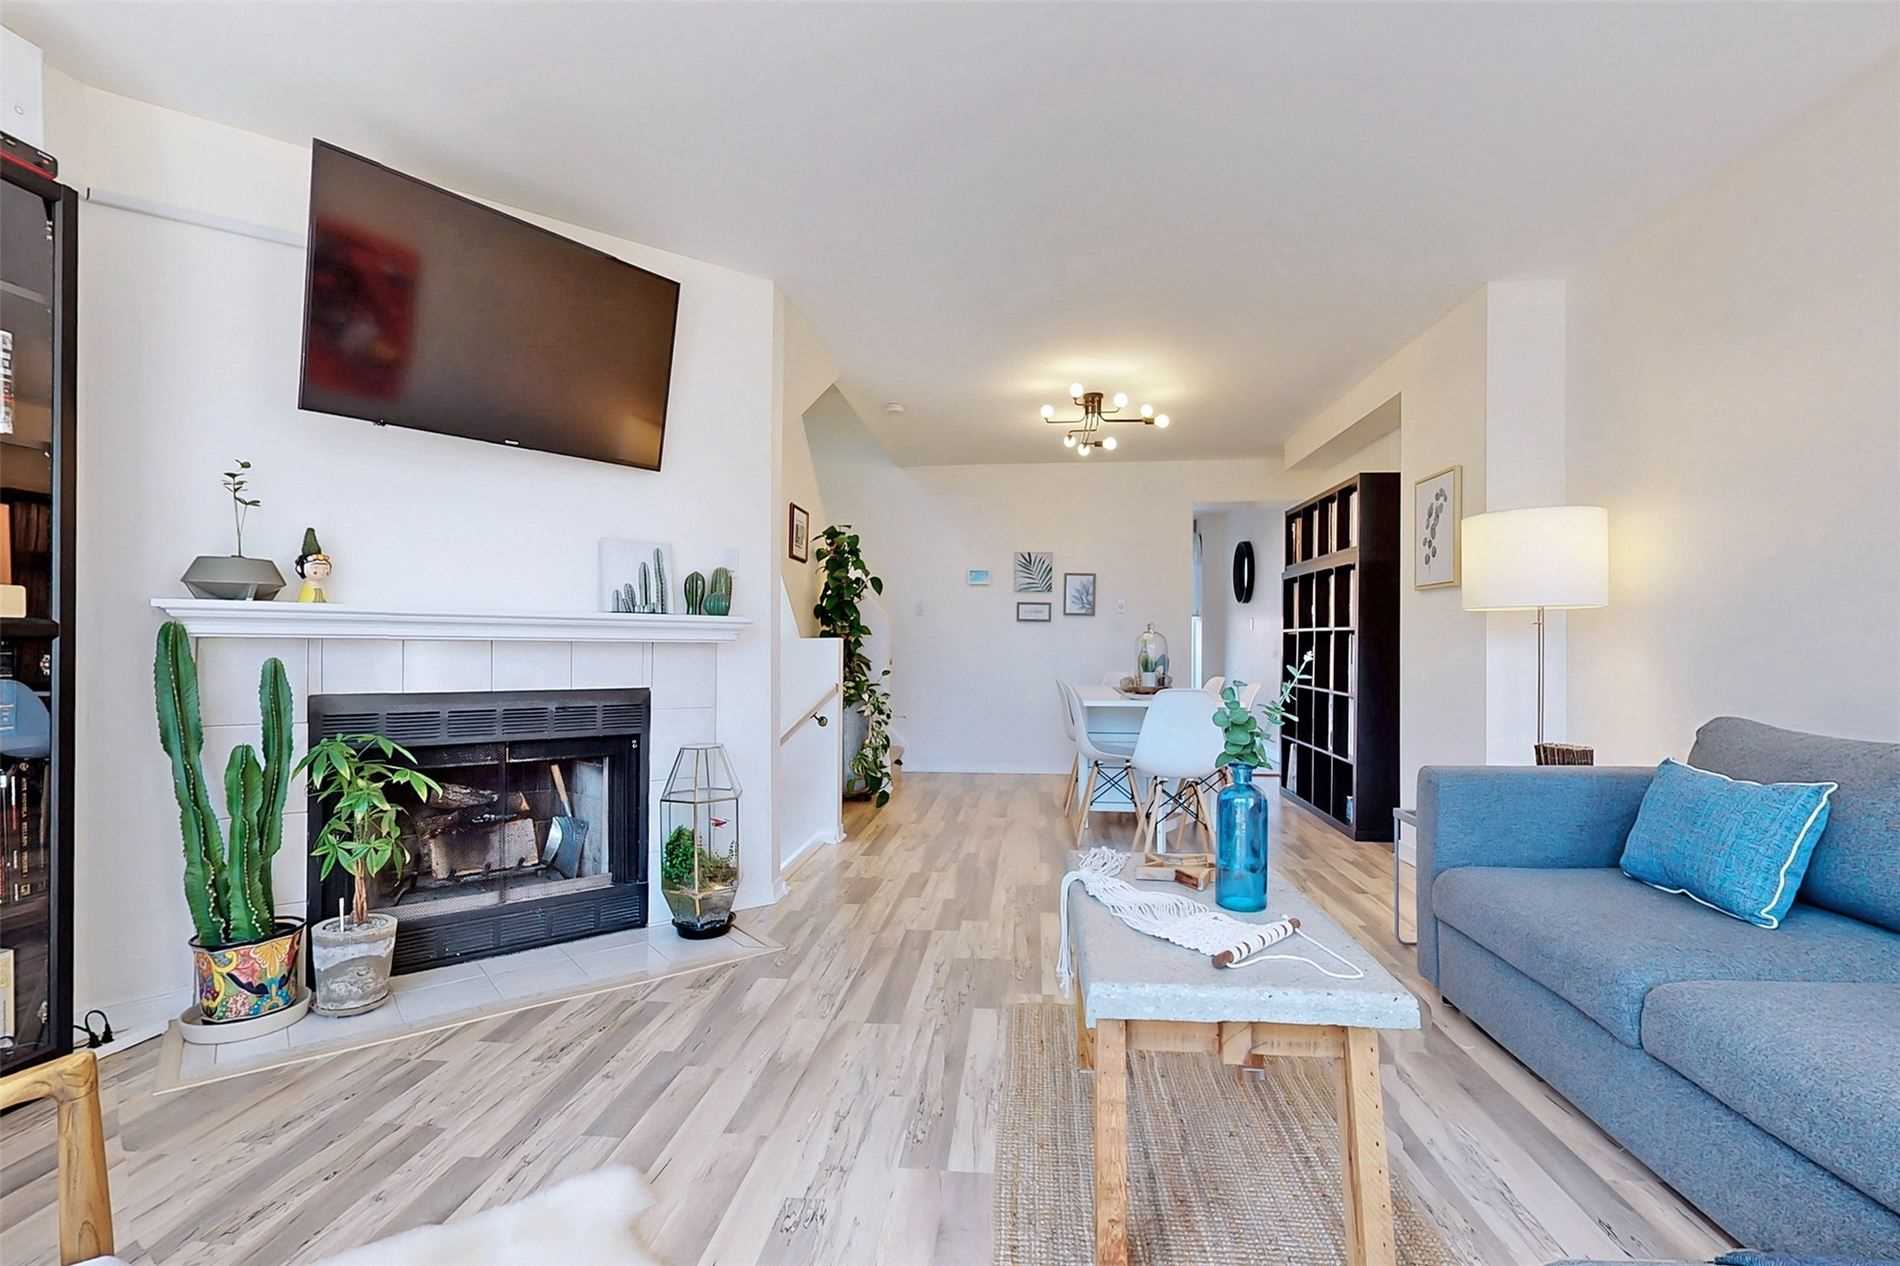 Image 6 of 40 showing inside of 3 Bedroom Condo Townhouse 3-Storey for Sale at 14 Cumberland Lane Unit# 7, Ajax L1S7K4